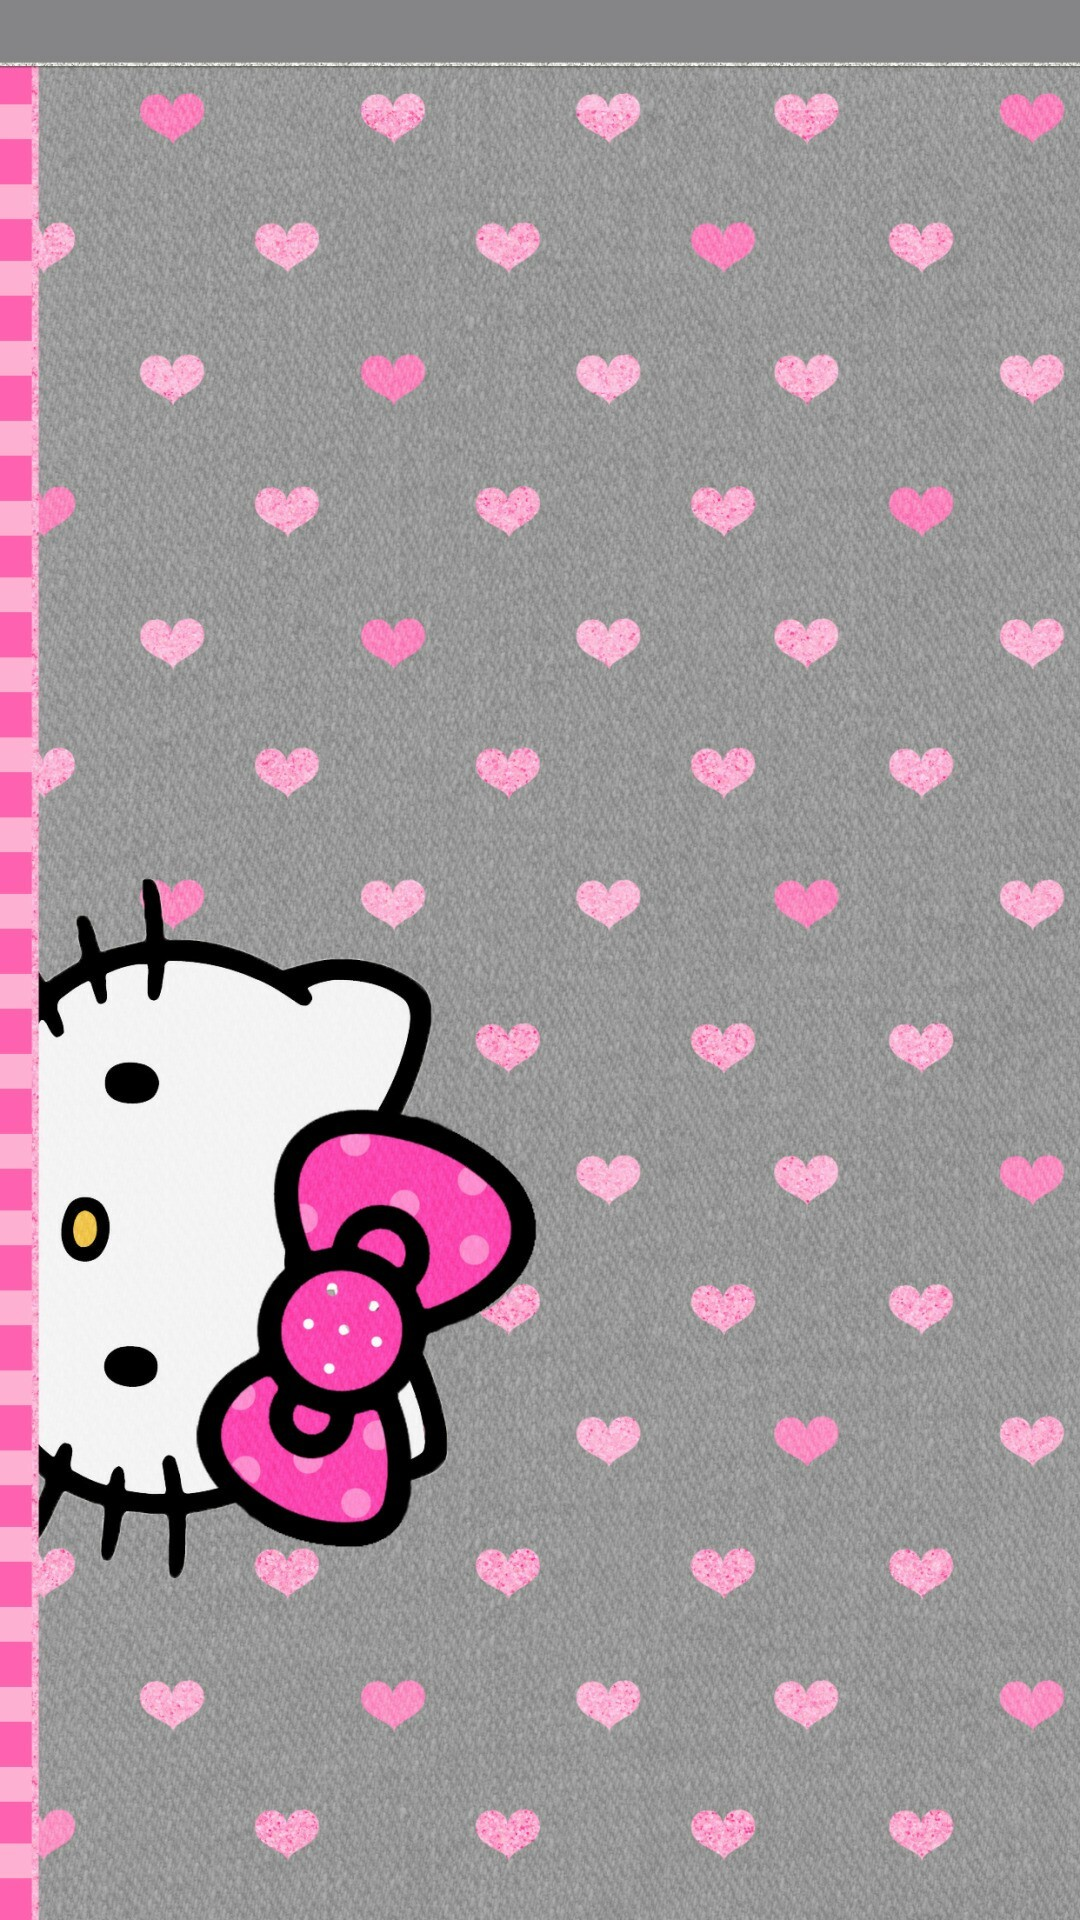 Best Wallpaper Hello Kitty Cute - 957505-hello-kitty-black-background-1080x1920-for-android-50  Photograph_483122.jpg